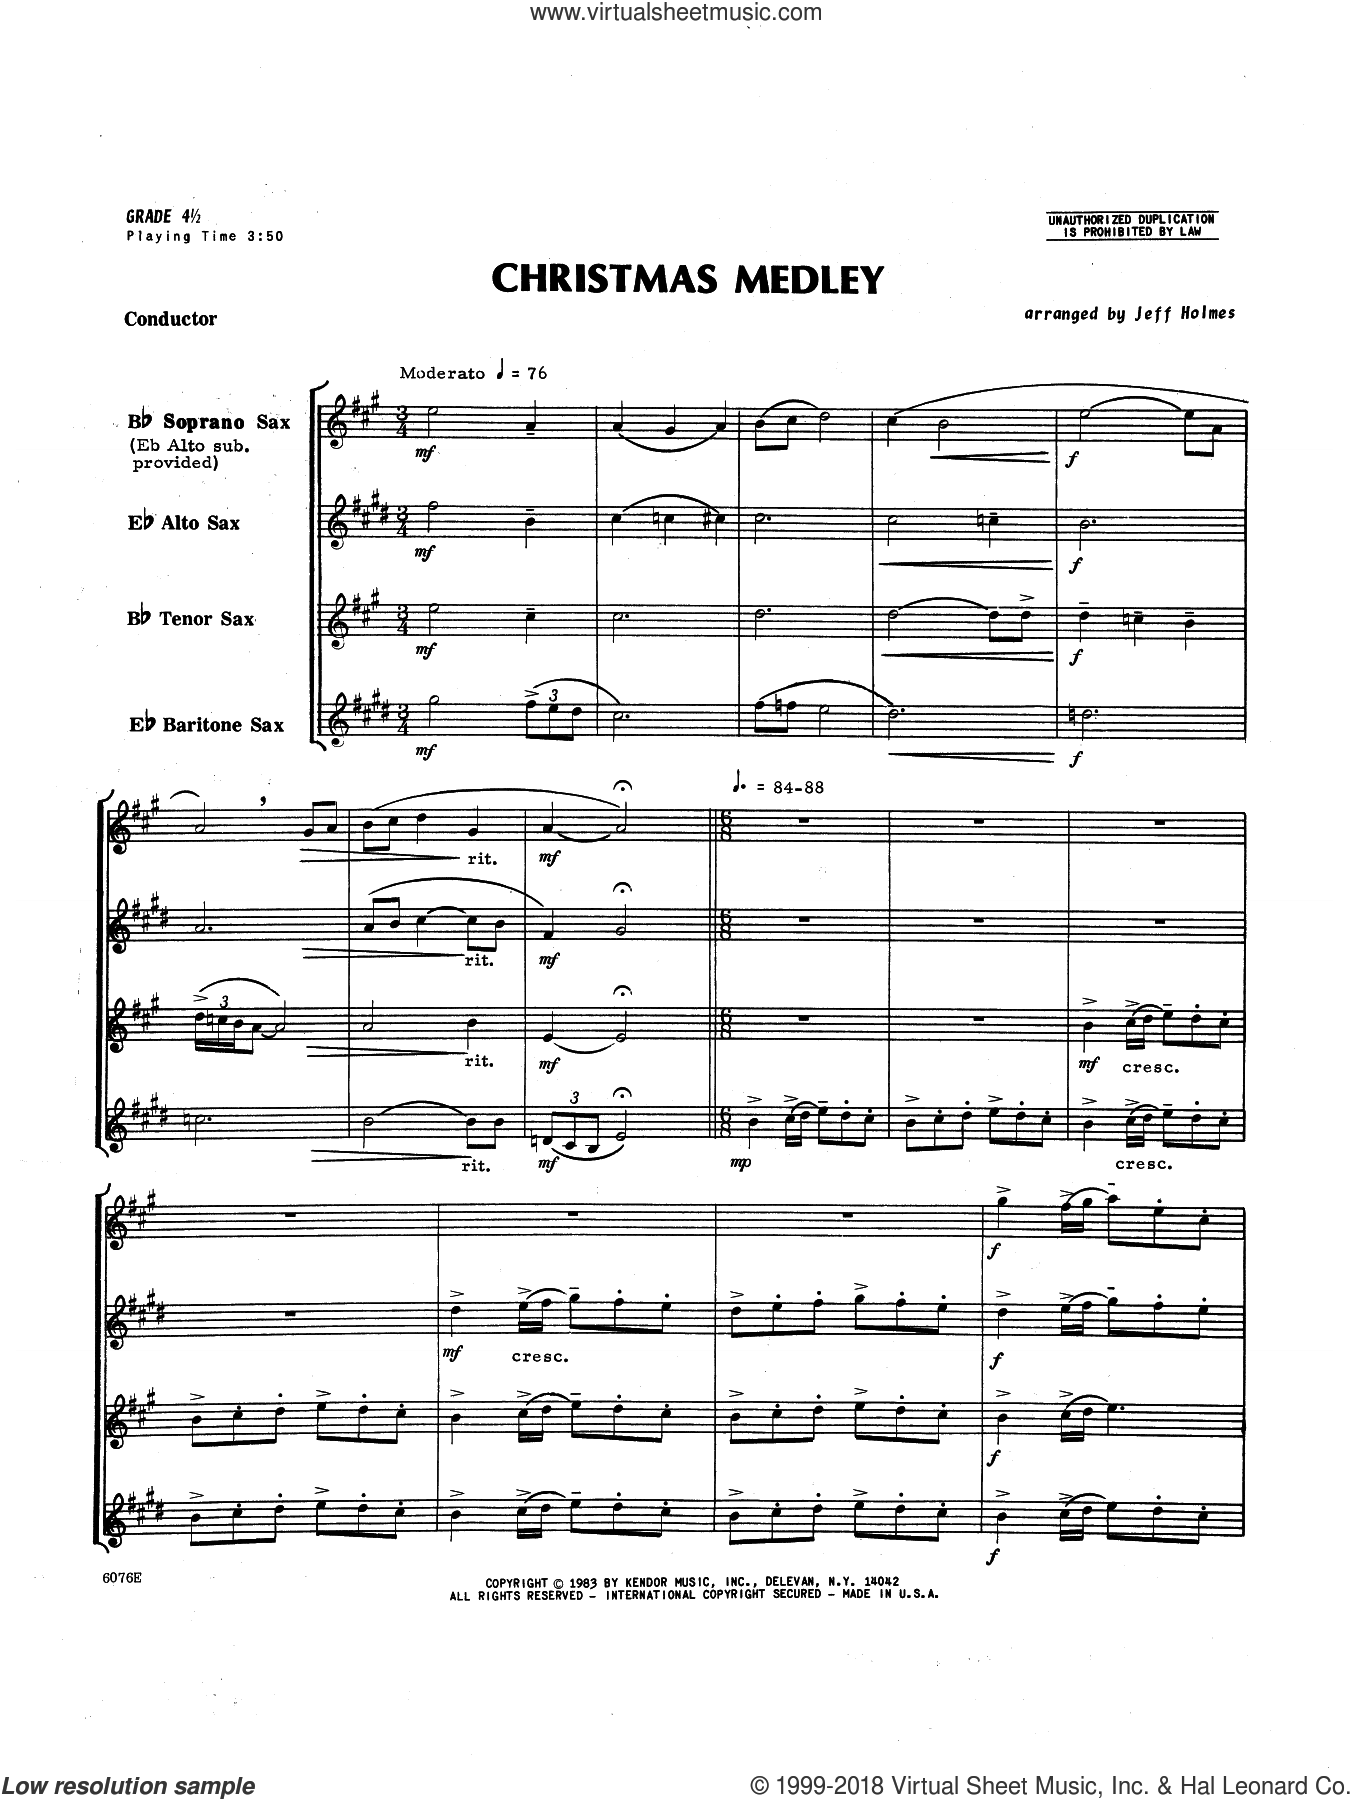 Christmas Medley (COMPLETE) sheet music for saxophone quartet by Holmes, intermediate skill level